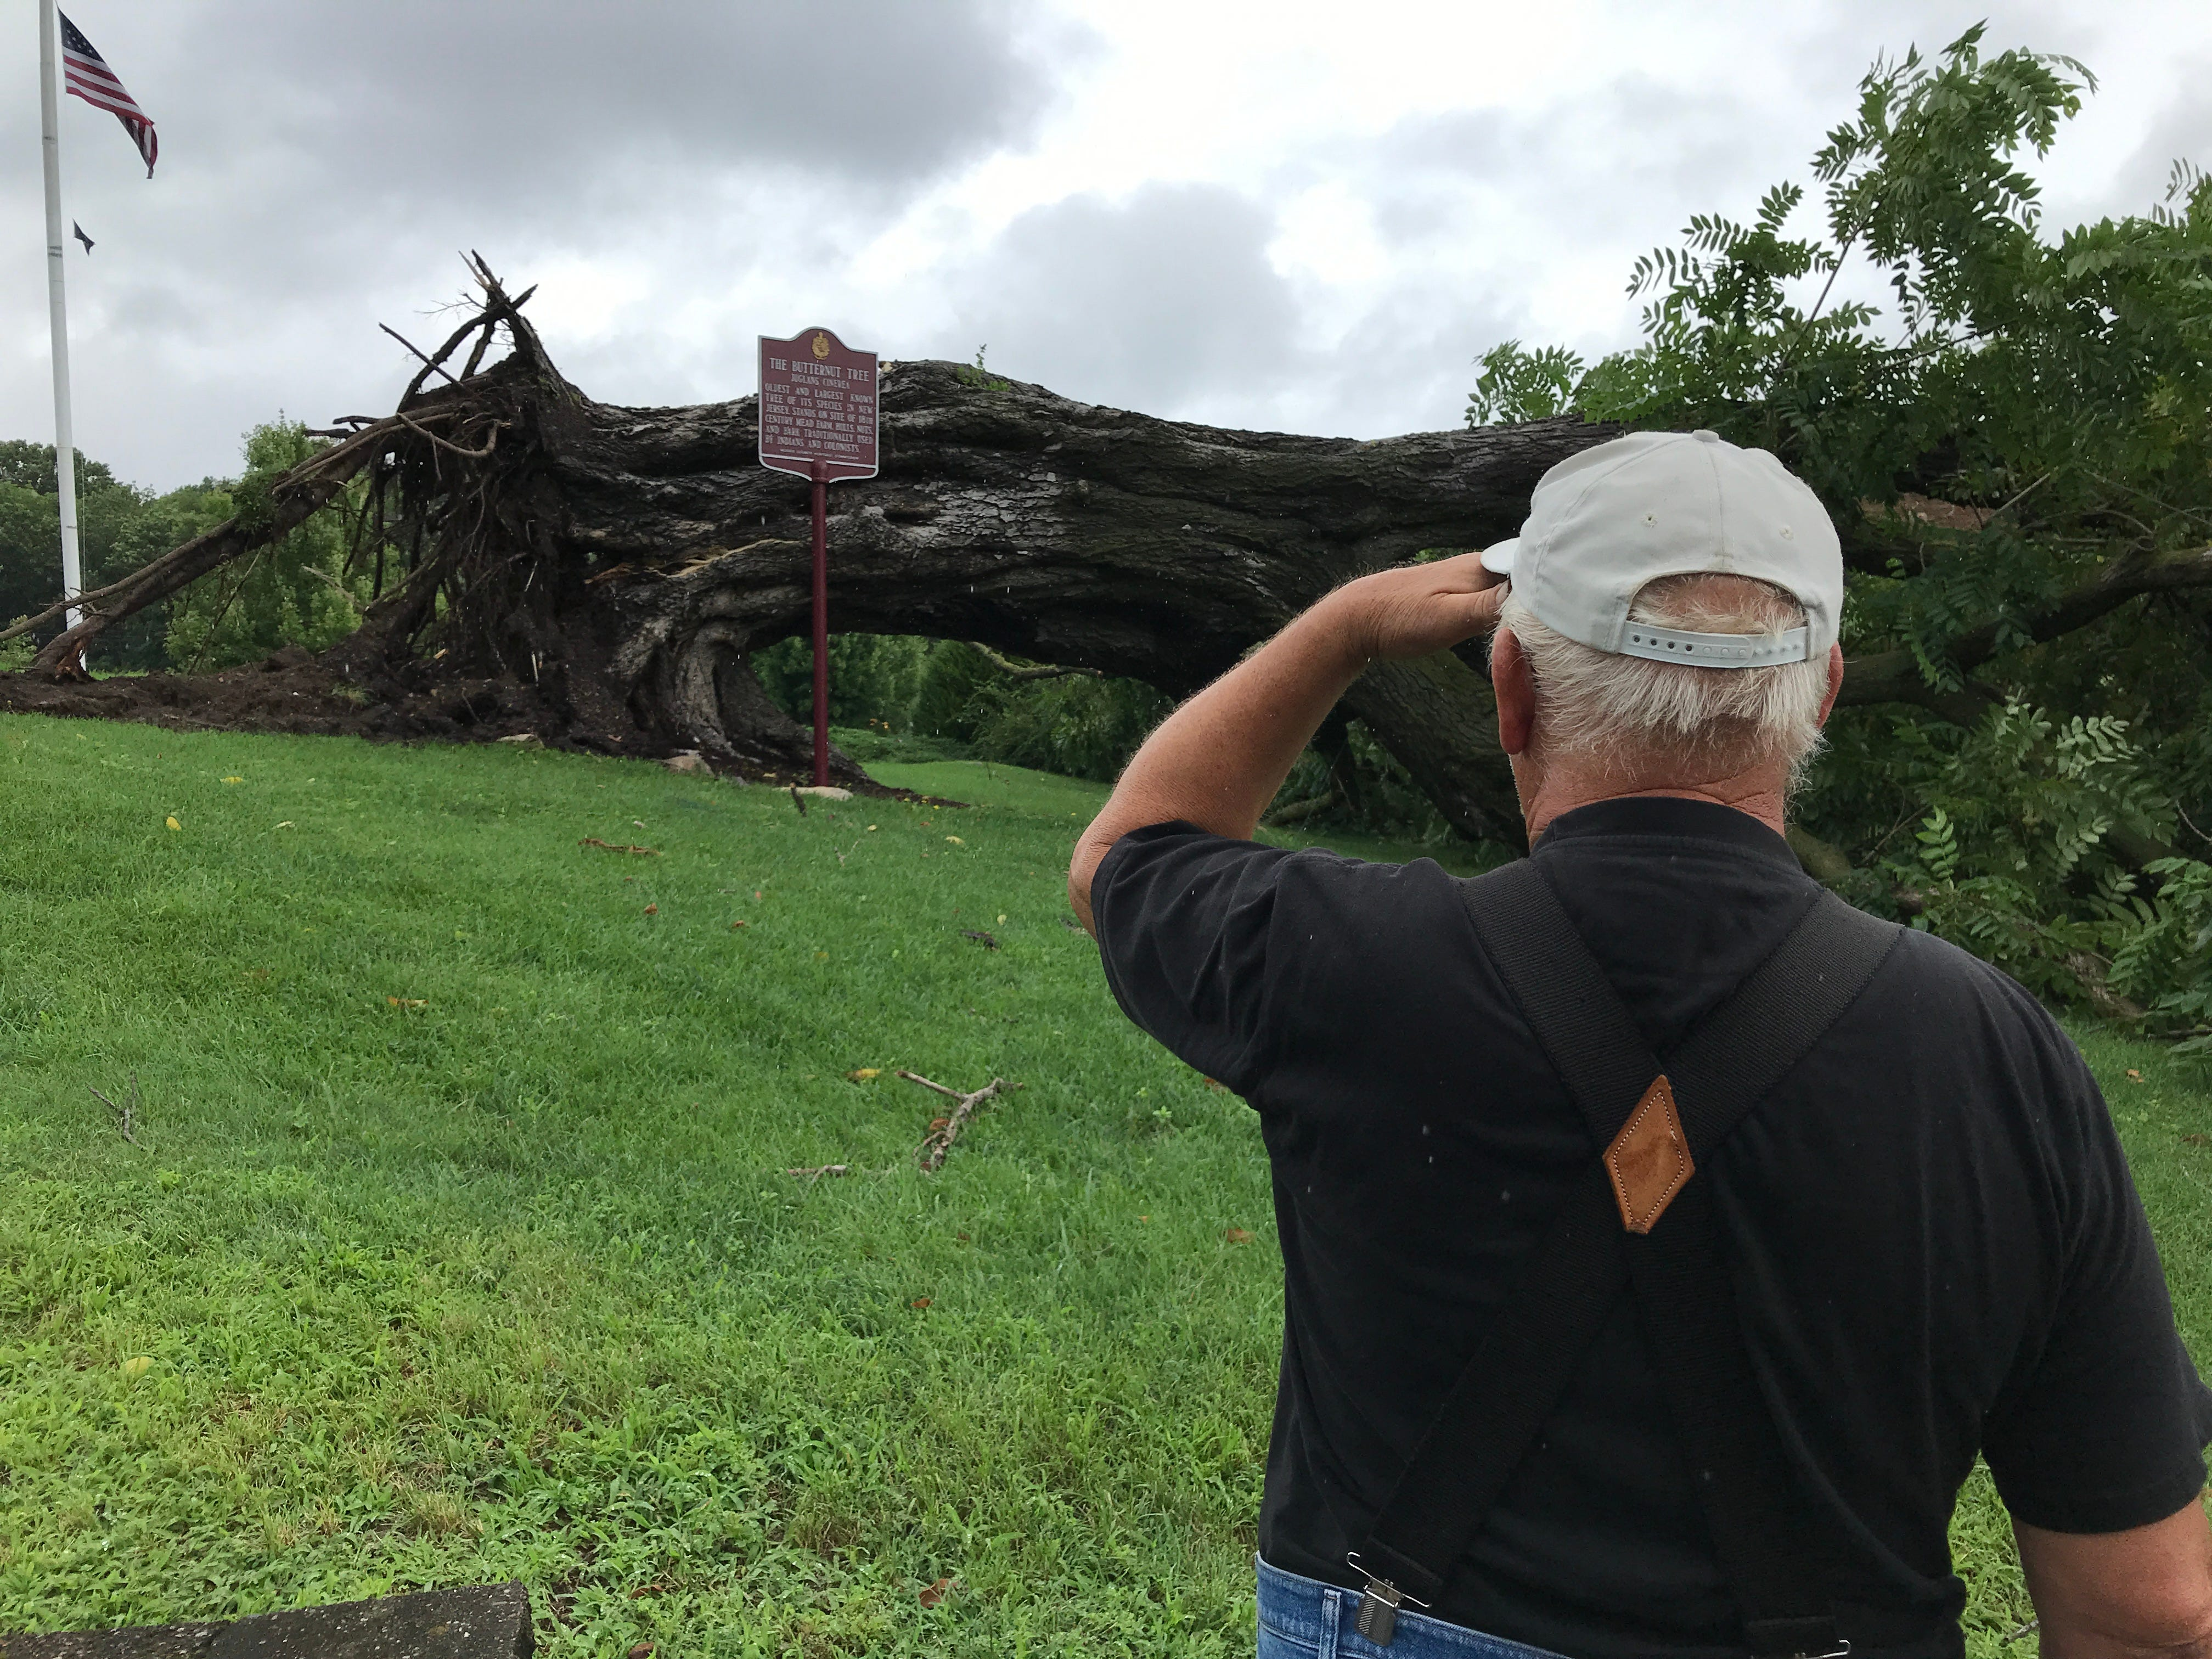 Kinnelon's historic Butternut Tree was felled by a storm that blew through the area. The tree, the oldest and largest known tree in New Jersey, is inscribed on the municipal seal and and emblazoned on local police officers' uniform patches. Longtime Kinnelon resident Ernst Huber stopped by the site.